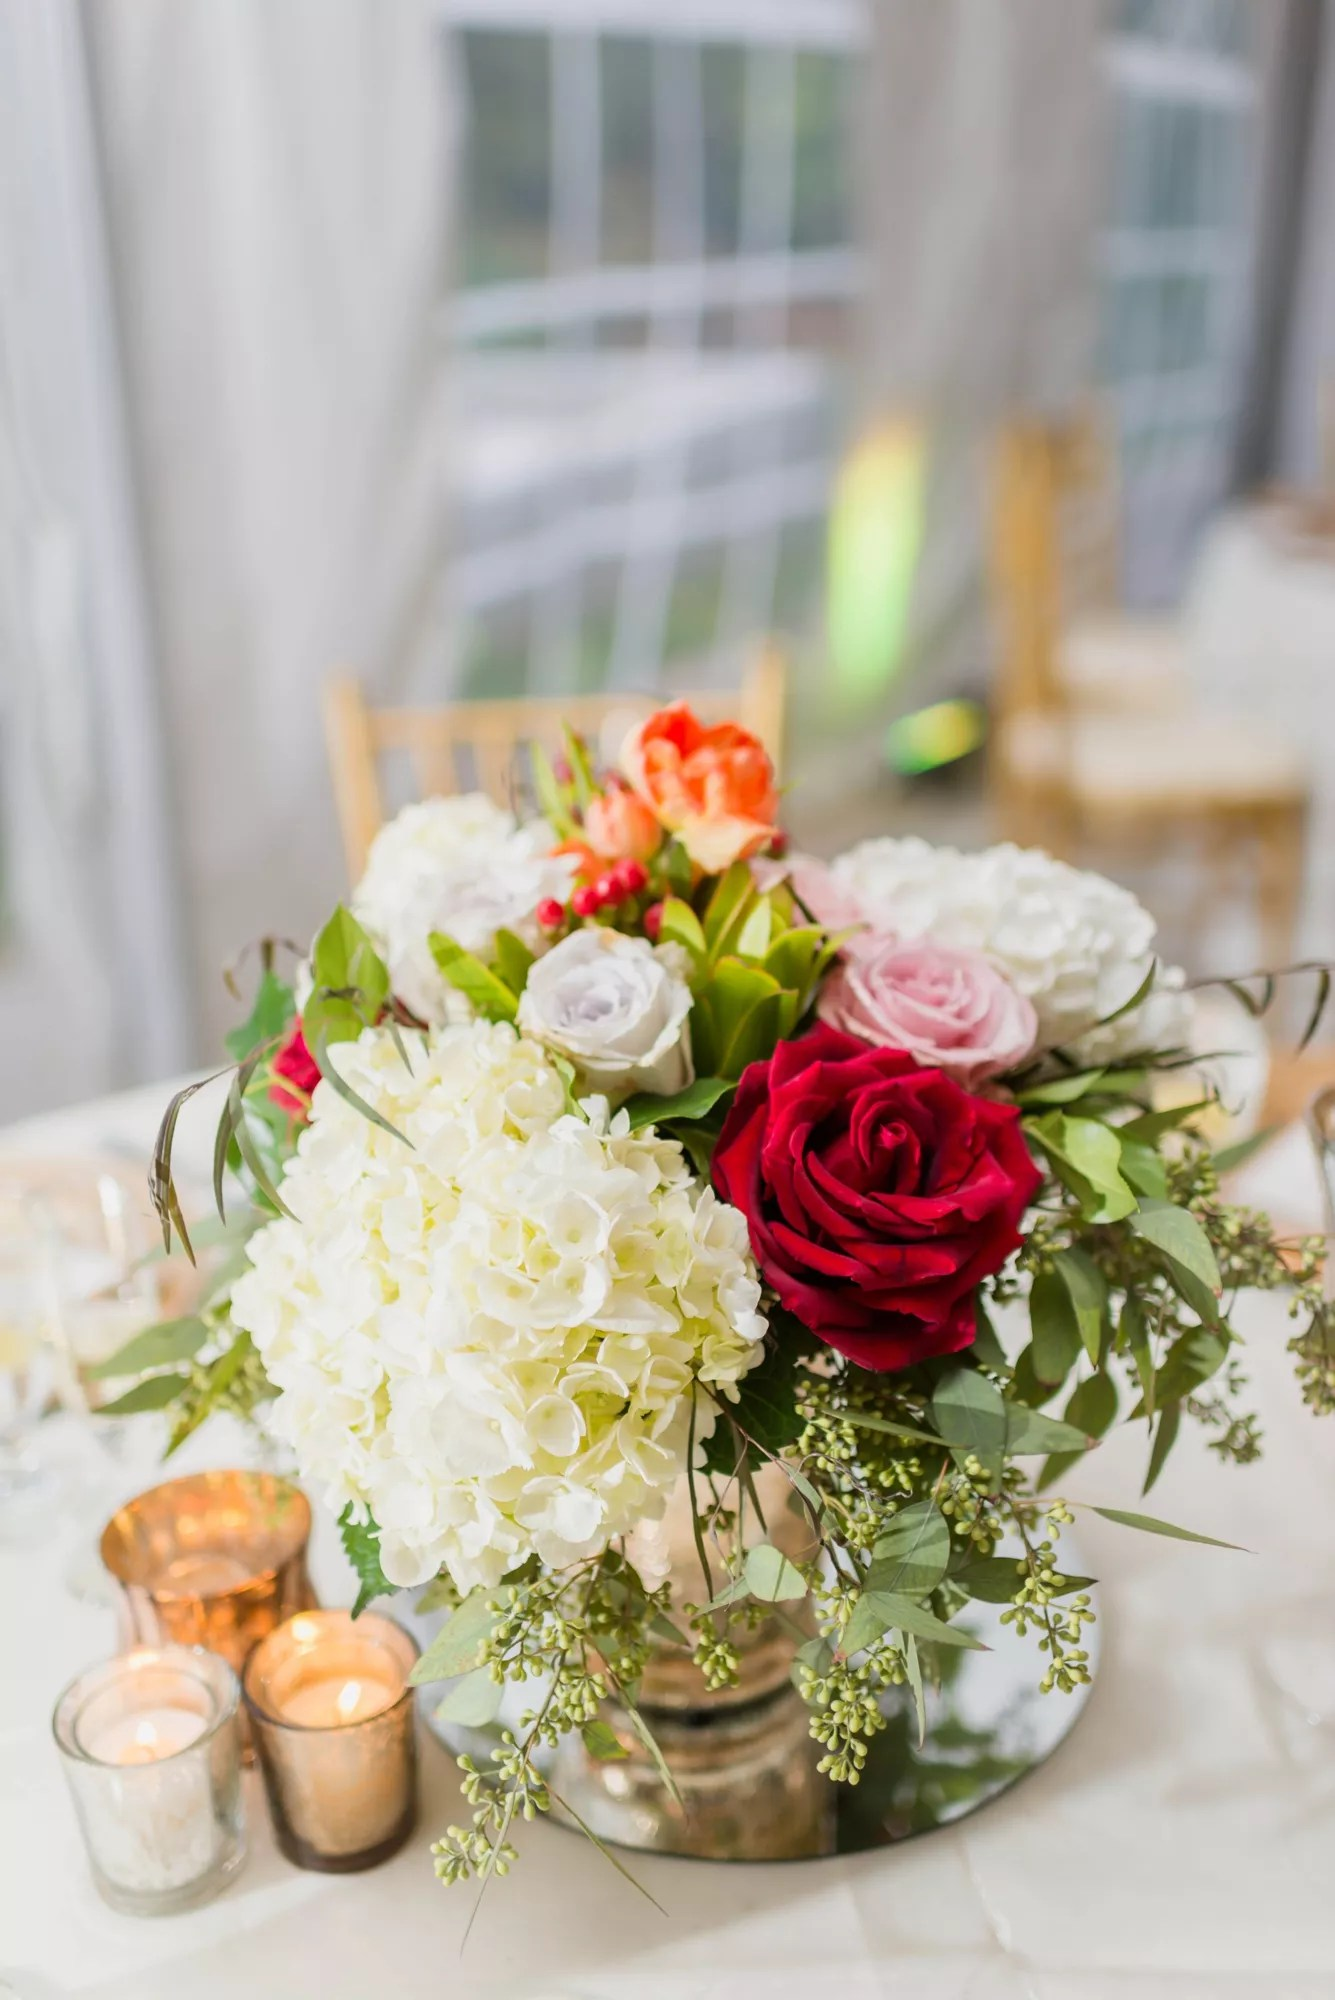 White Hydrangea And Red And Pink Rose Centerpieces